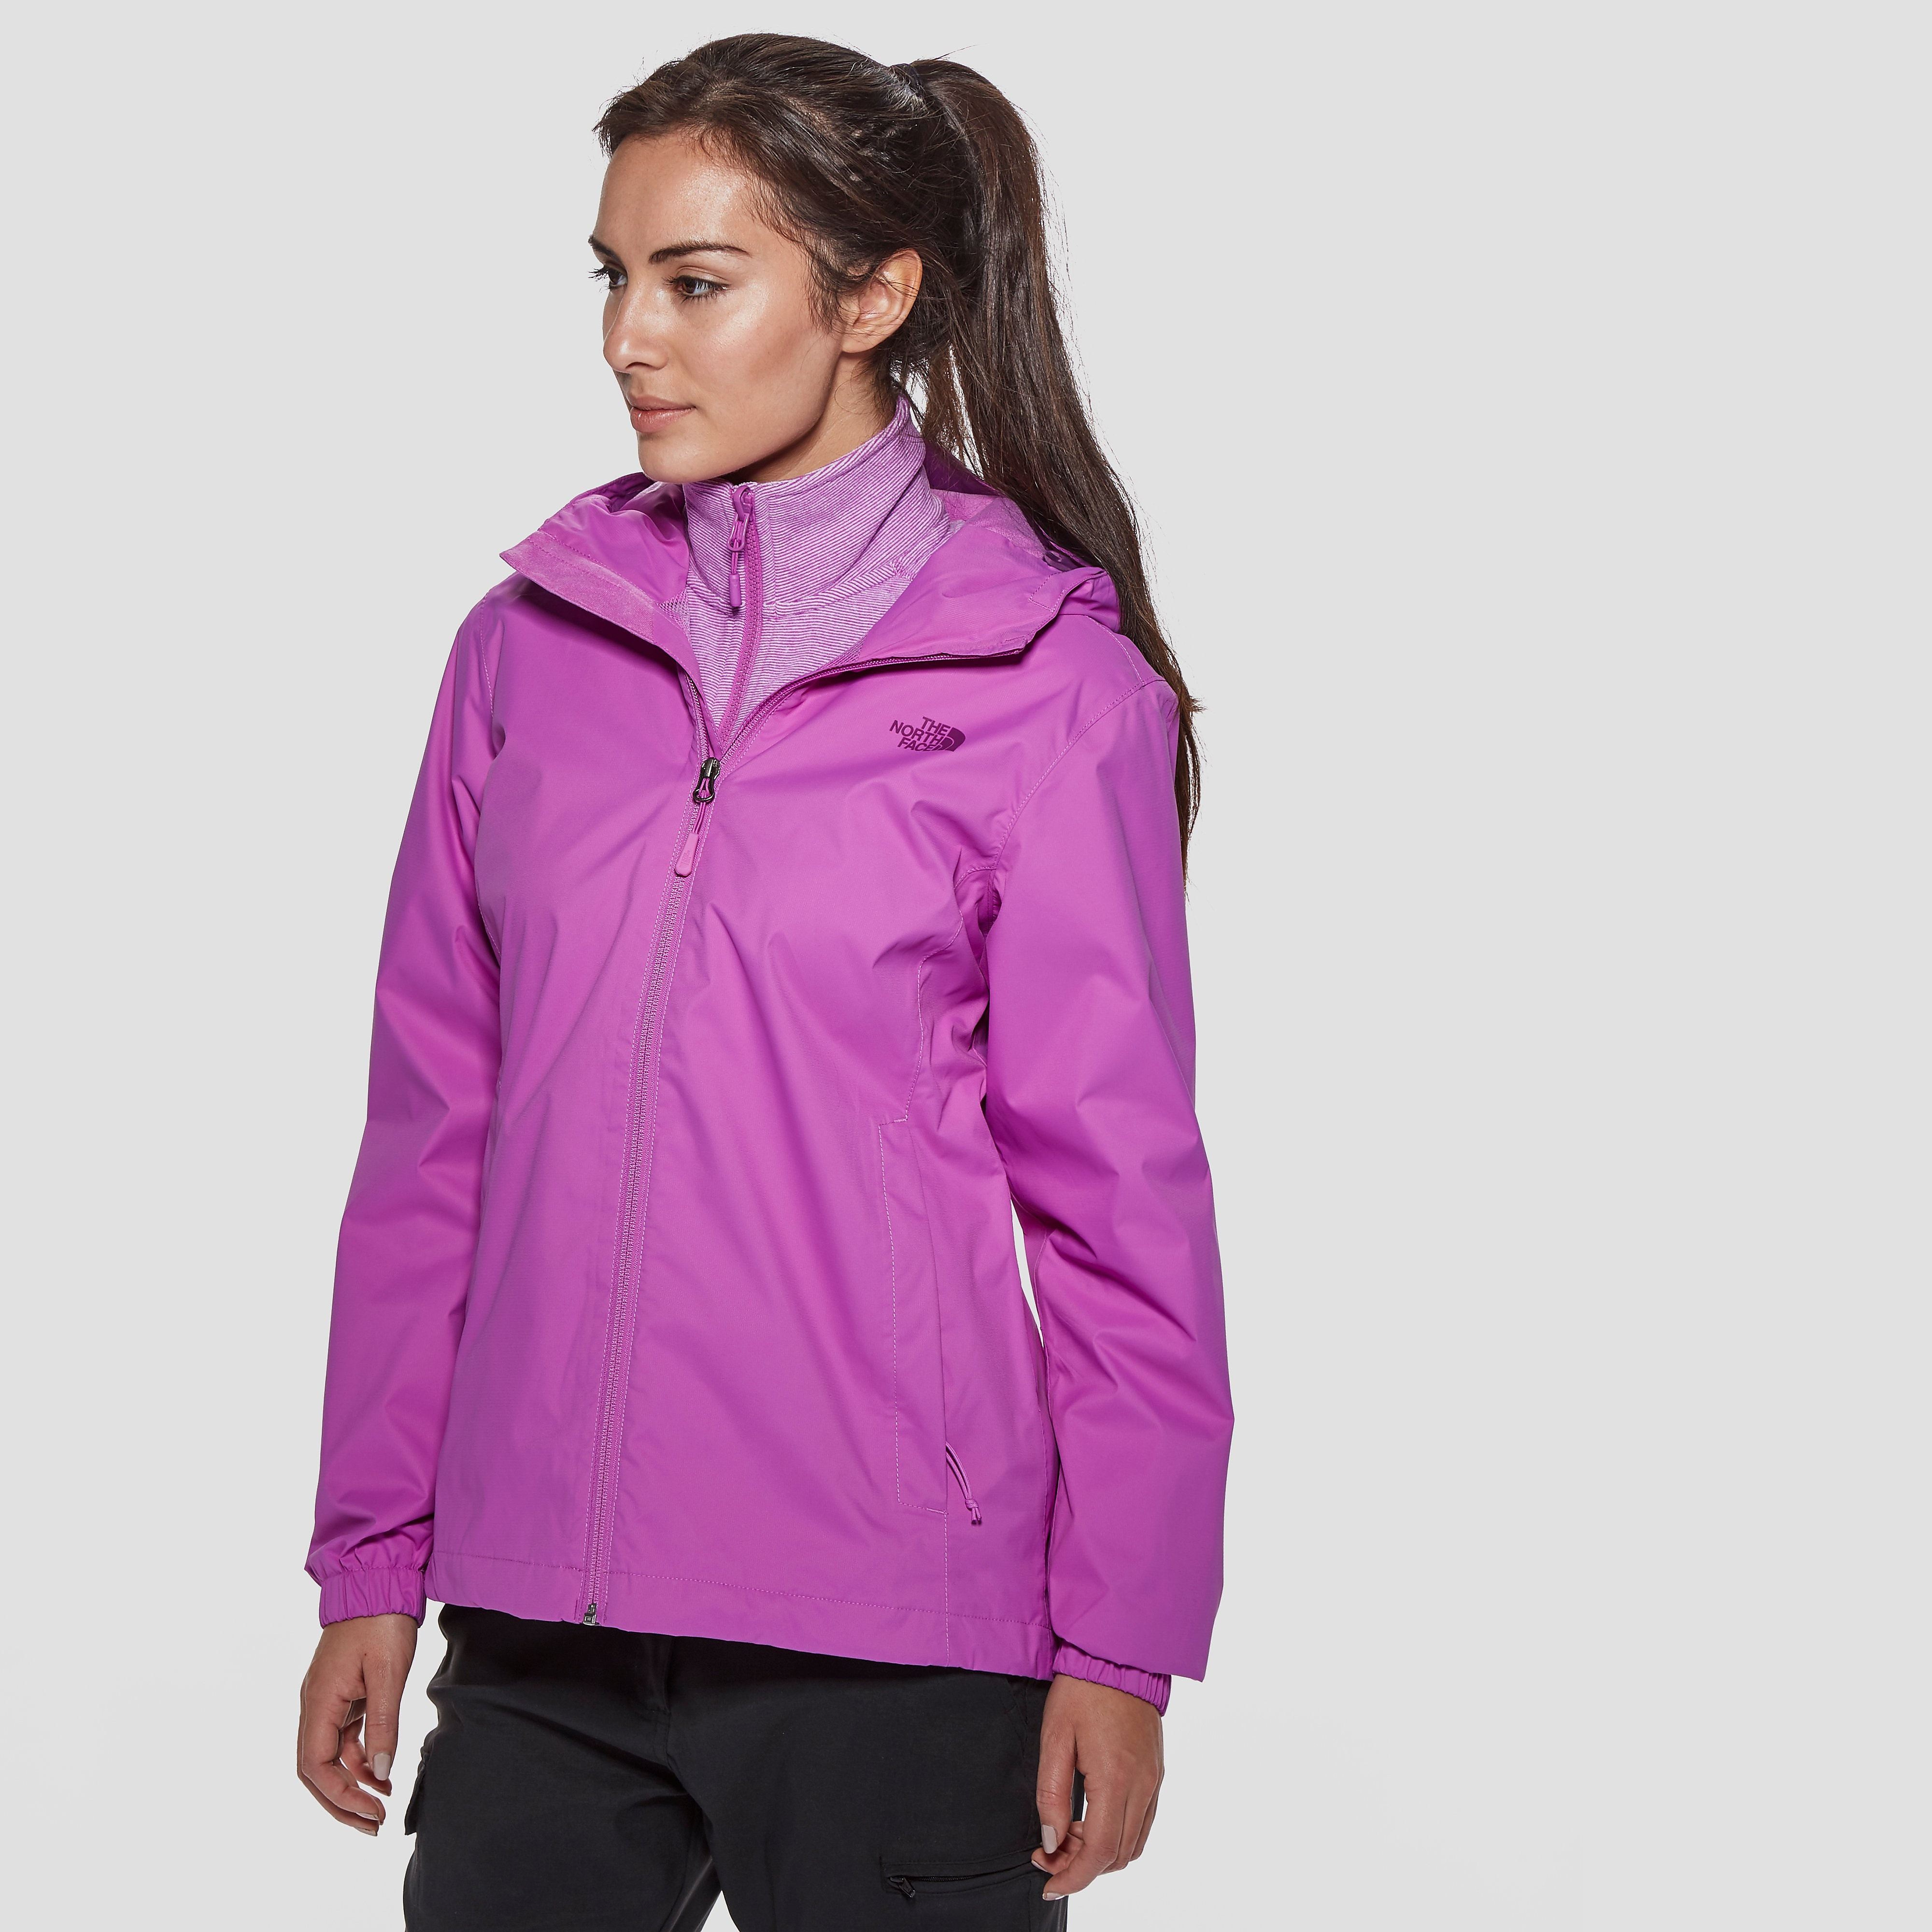 The North Face Quest Women's Jacket